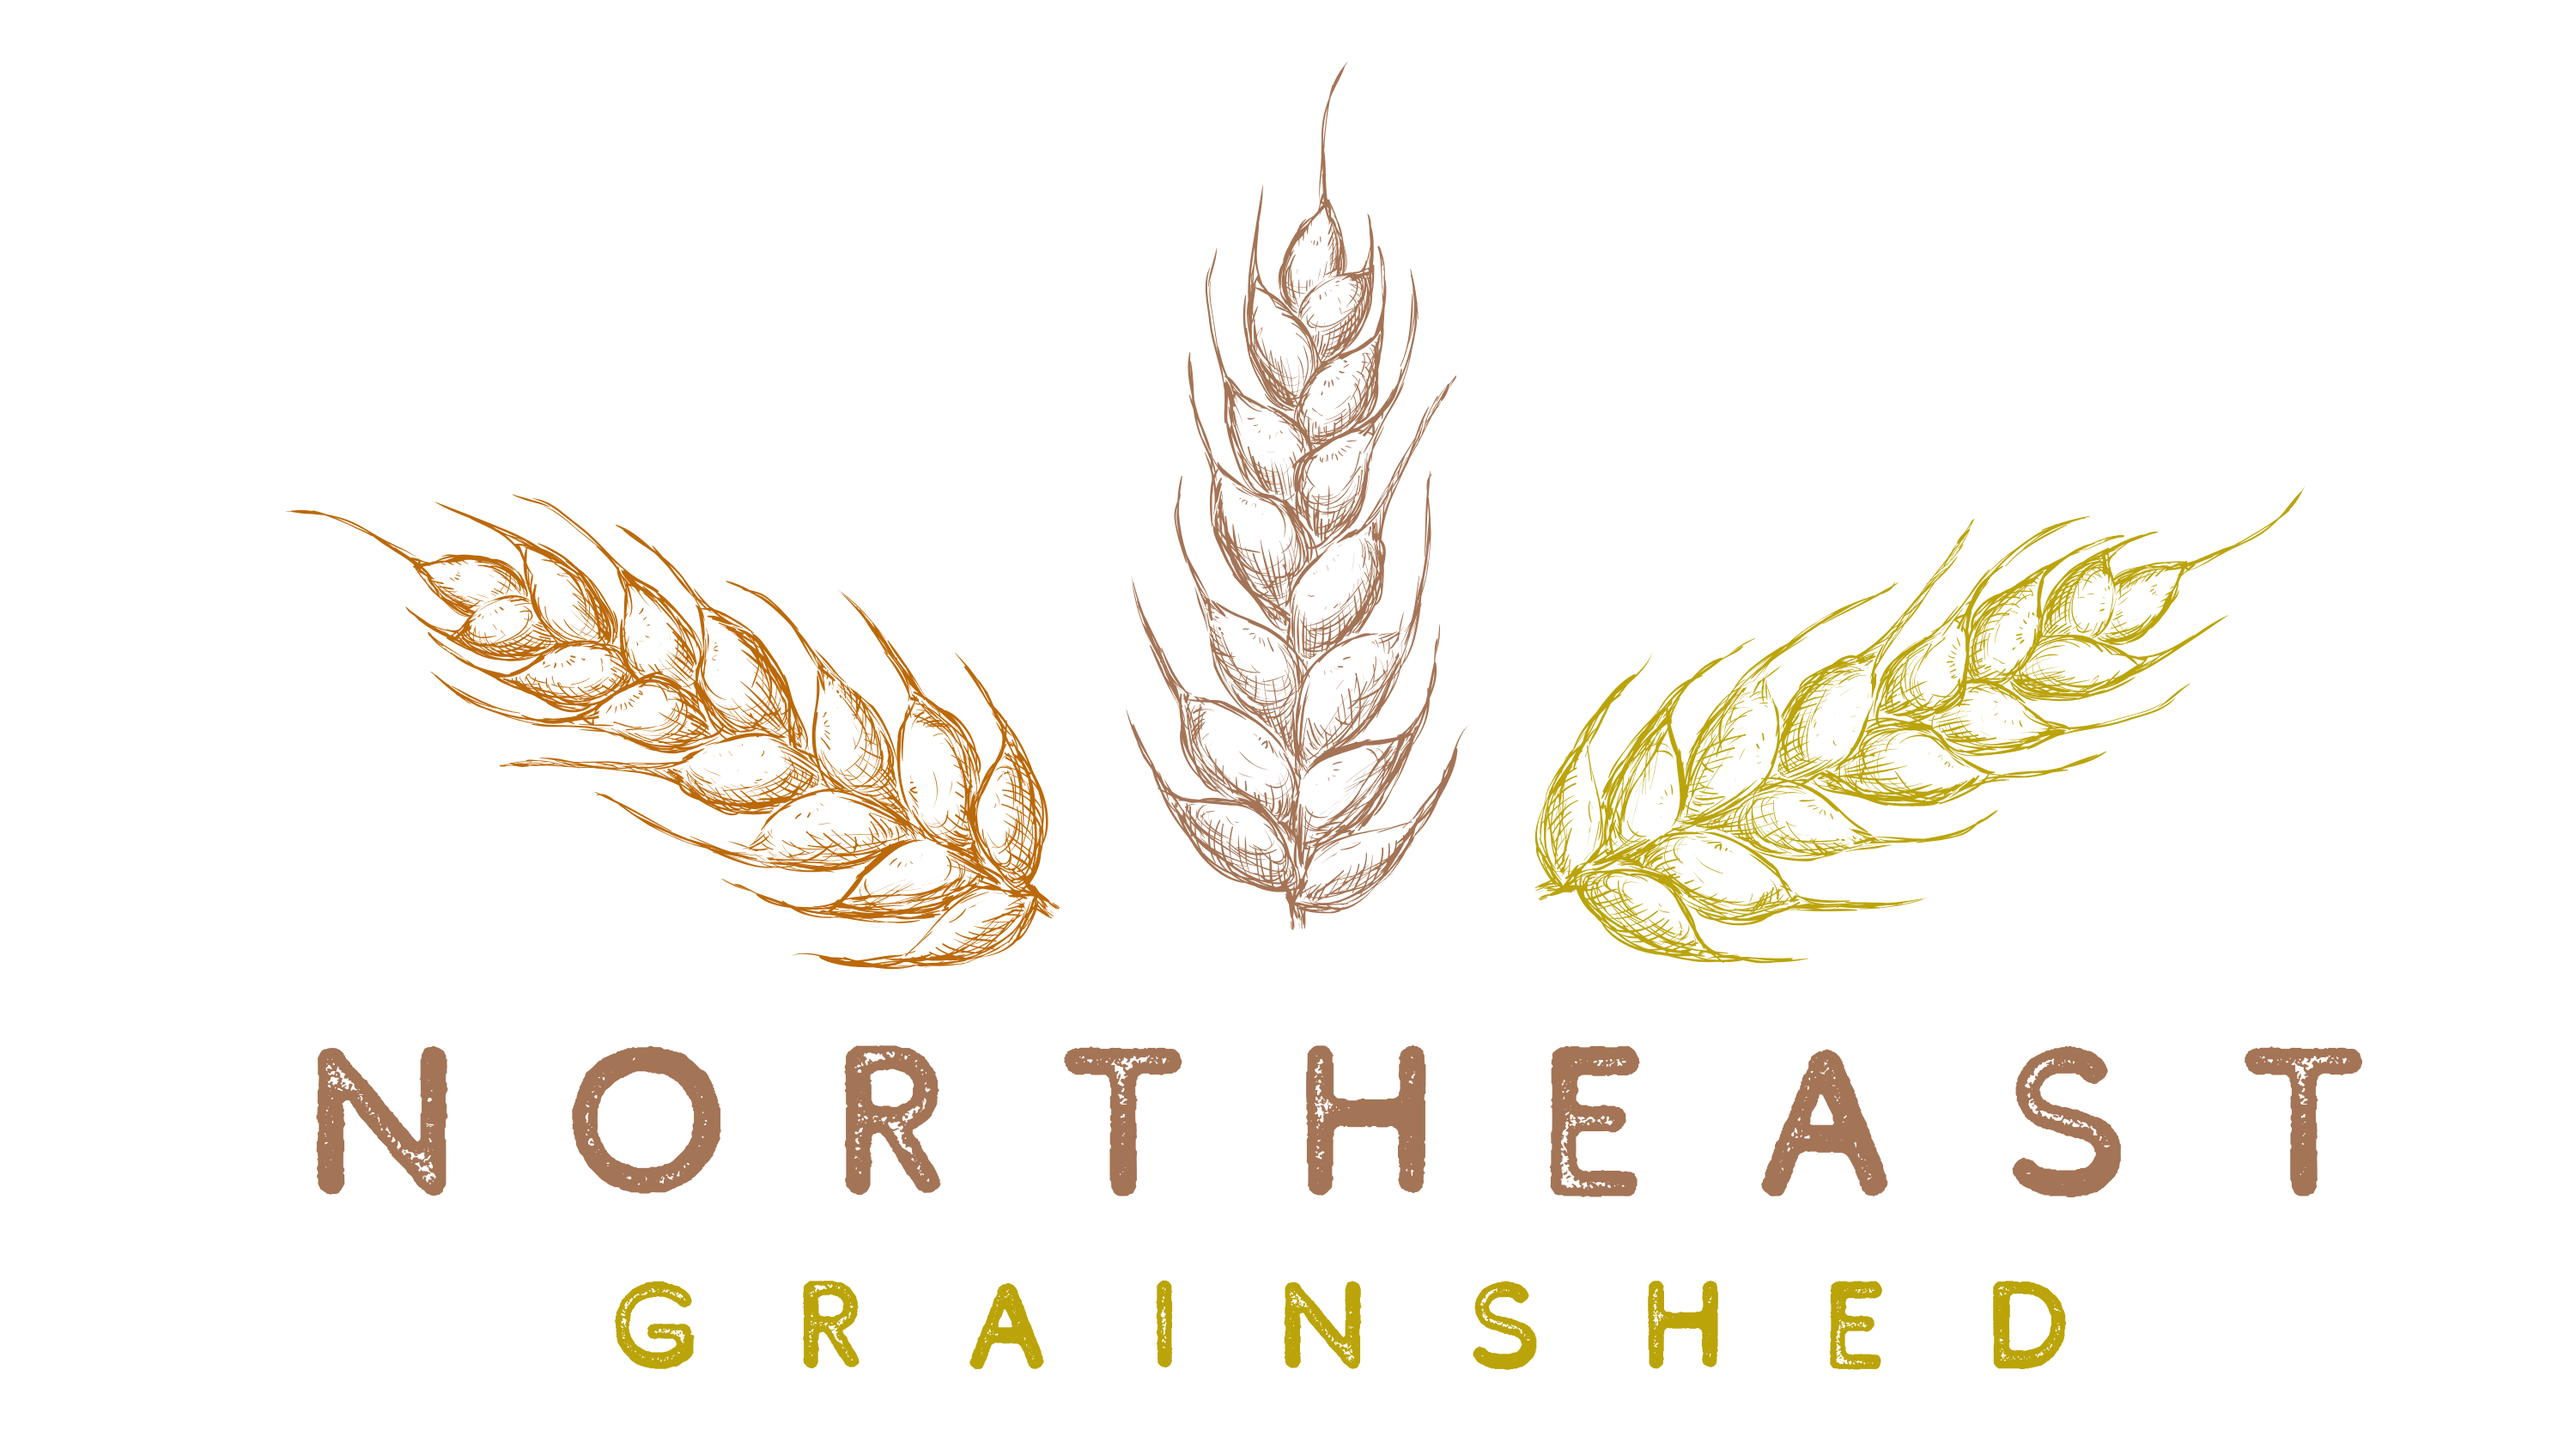 Northeast Grainshed